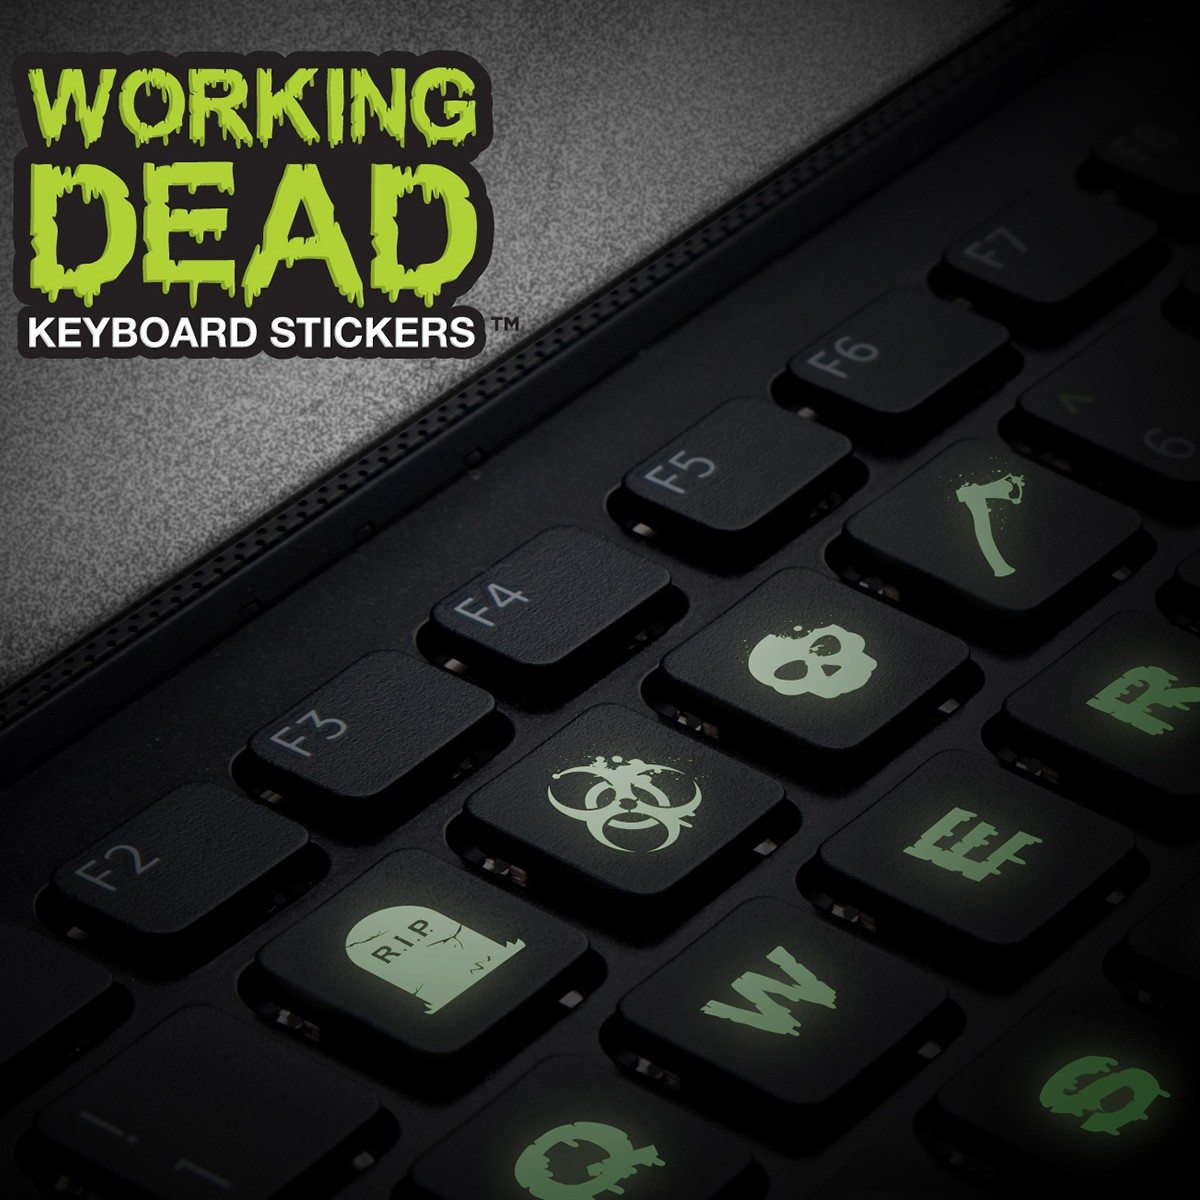 « The Working Dead » - Stickers fluorescents pour clavier